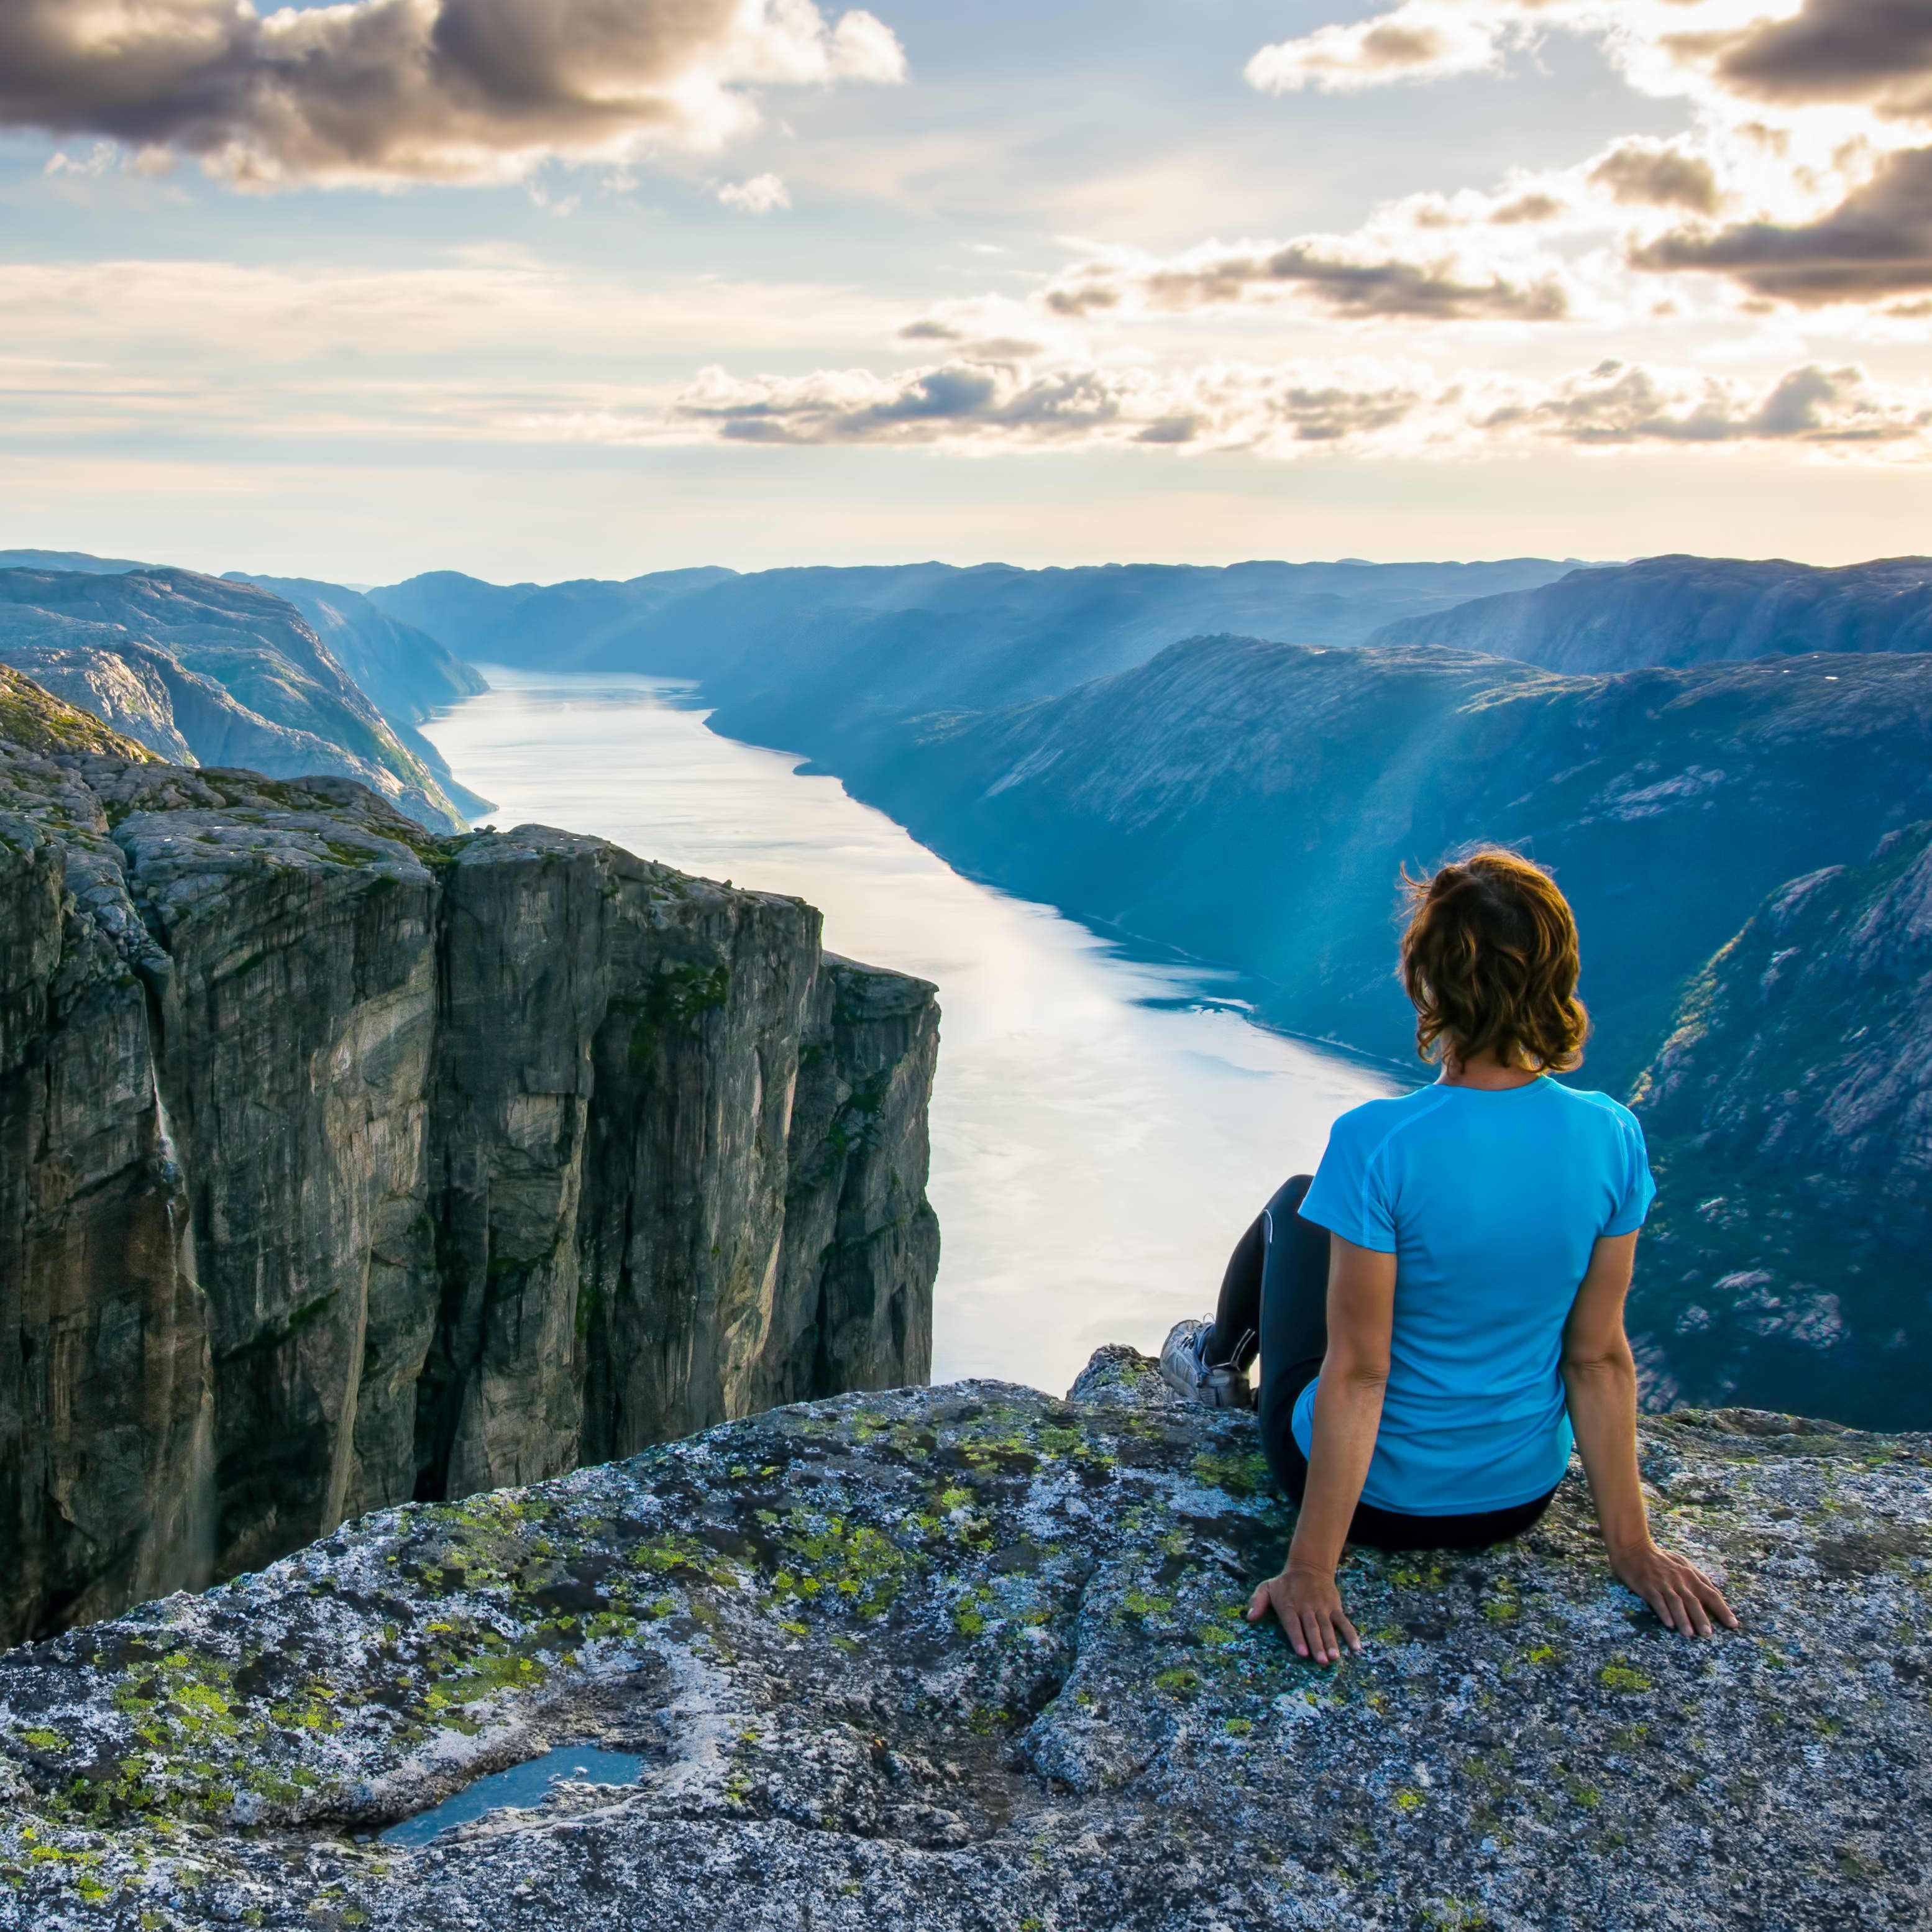 A woman is sitting on the edge of cliff on the way to boulder (Kjeragbolten) stuck in between the mountain crevices of Kjerag above a fjord, near Lysebotn, Norway. The feeling of complete freedom.